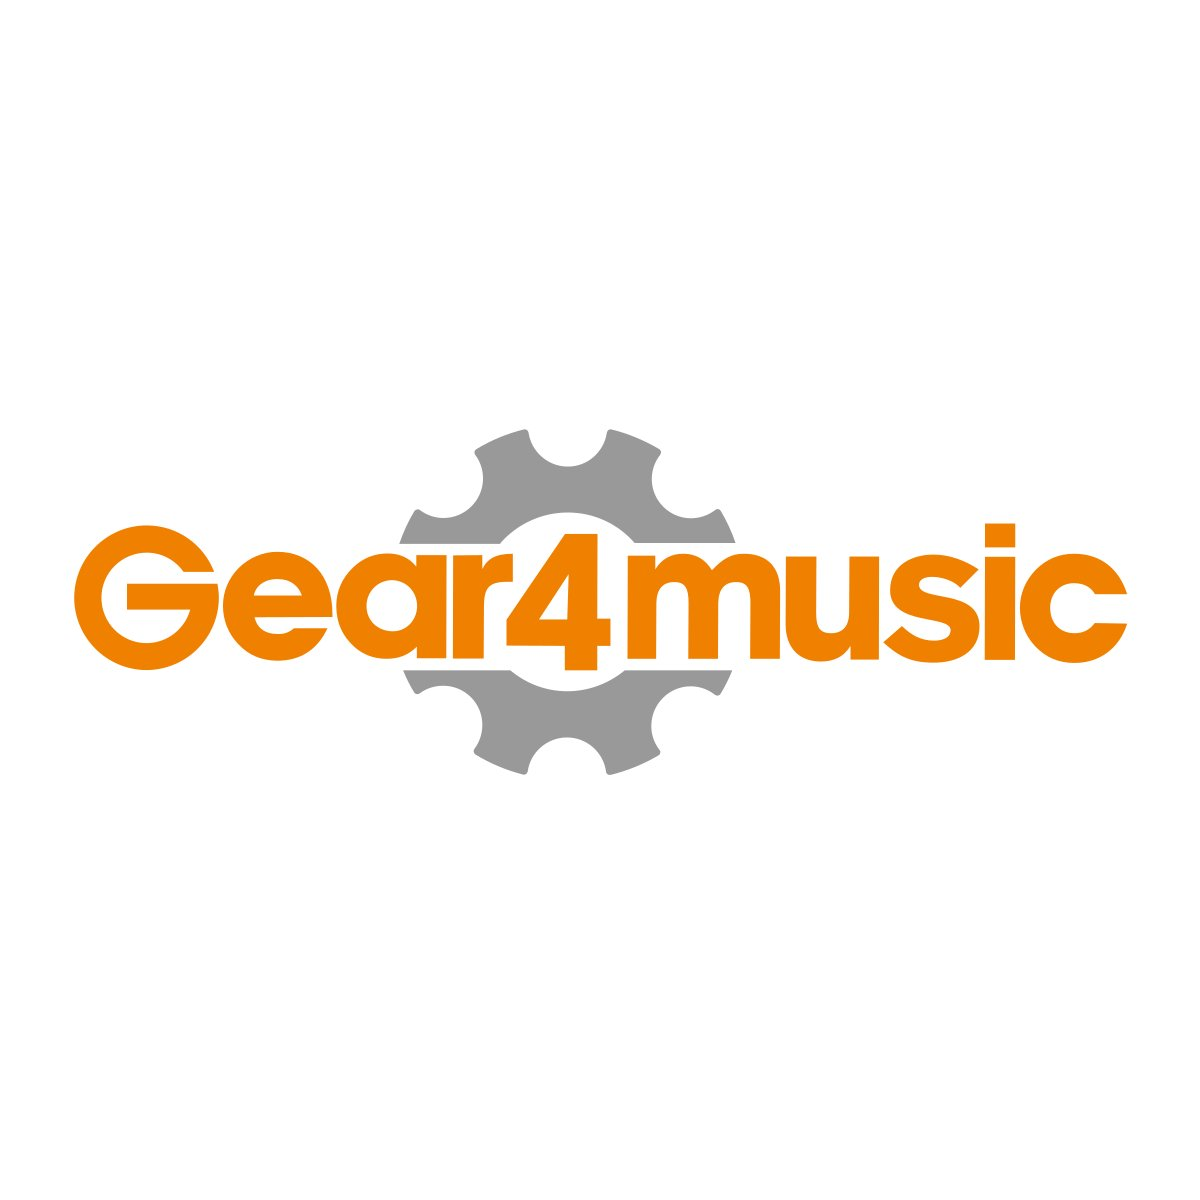 Alto Saxophone by Gear4music, Black & Gold